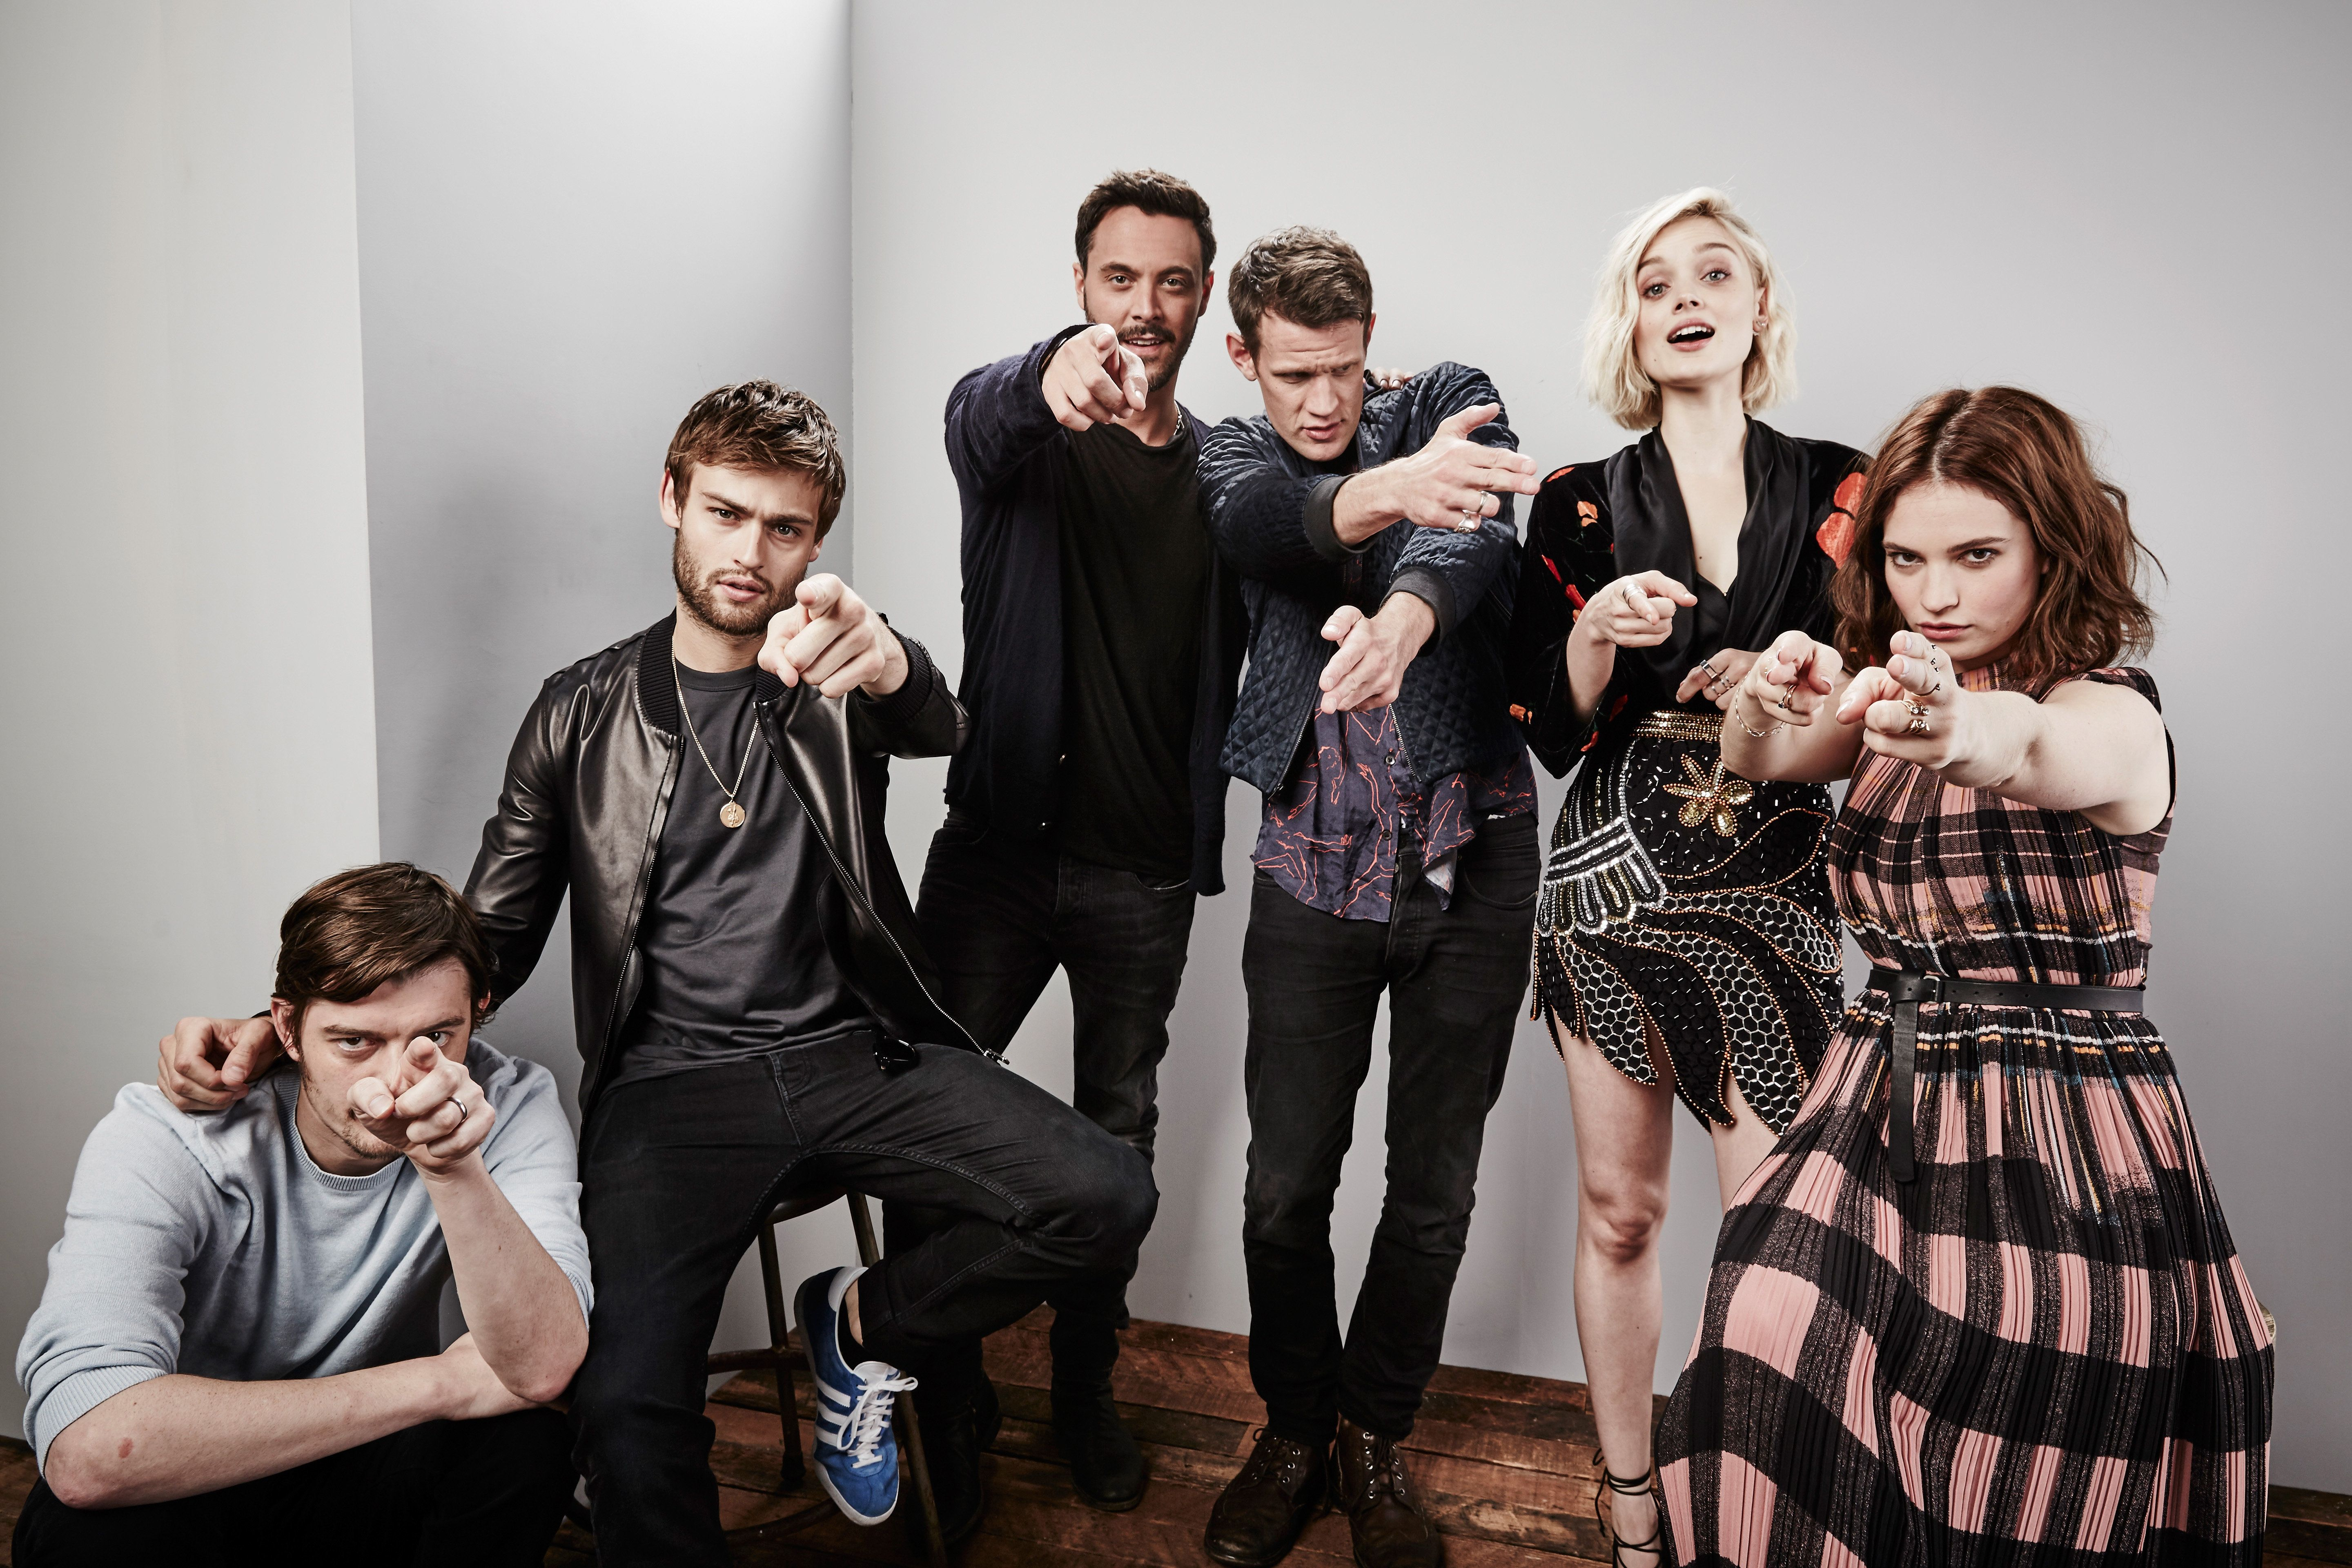 SAN DIEGO, CA - JULY 11:  (L-R) Actors Sam Riley, Douglas Booth, Jack Huston, Matt Smith, Bella Heathcote, and Lily James of 'Pride and Prejudice and Zombies' pose for a portrait at the Getty Images Portrait Studio Powered By Samsung Galaxy At Comic-Con International 2015 at Hard Rock Hotel San Diego on July 11, 2015 in San Diego, California.  (Photo by Maarten de Boer/Getty Images)